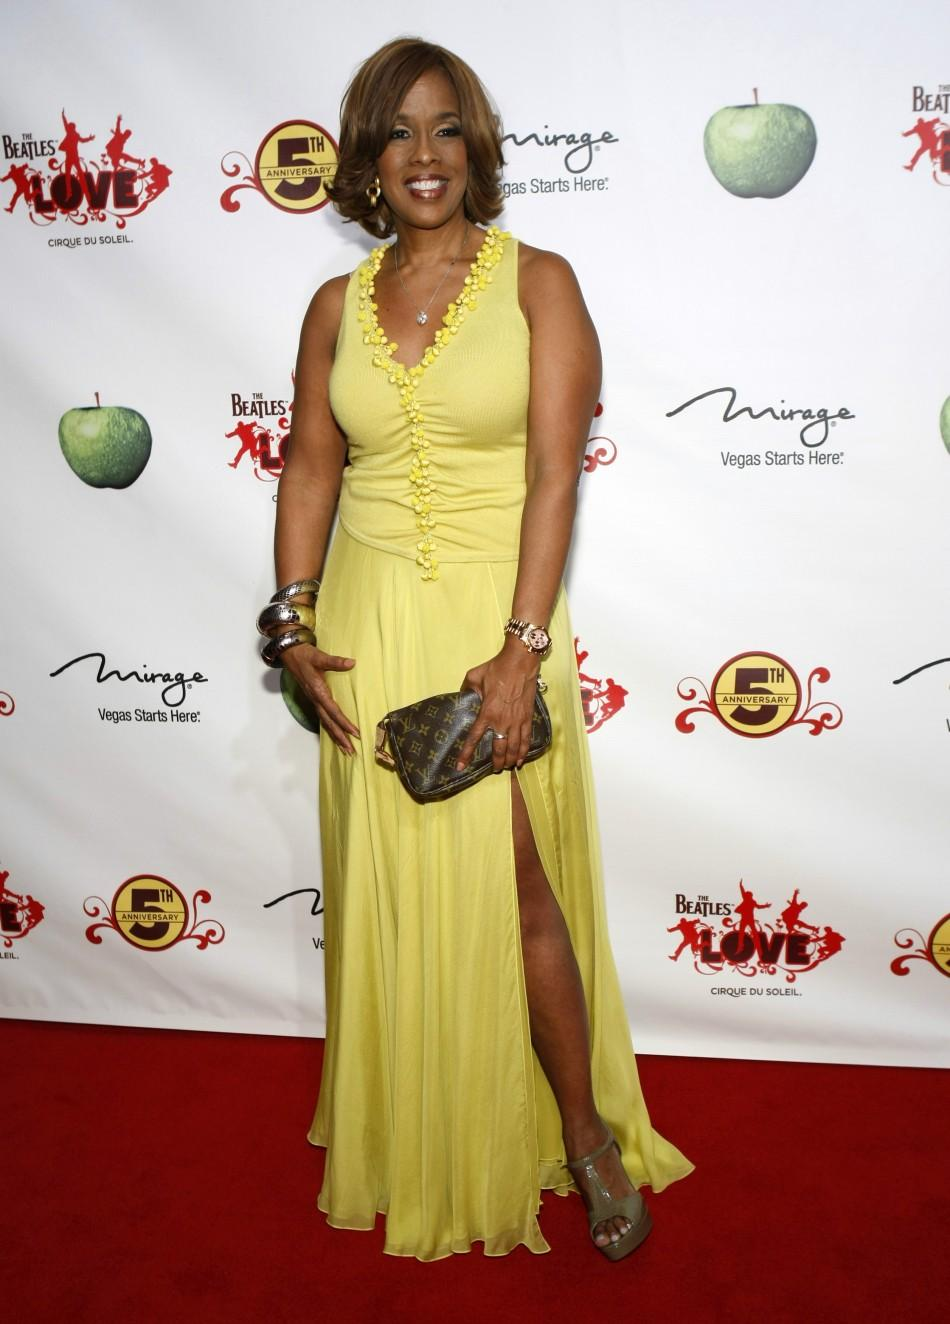 """Gayle King, editor-at-large of O, The Oprah Magazine, arrives for the fifth anniversary celebration of """"The Beatles LOVE by Cirque du Soleil"""" show at the Mirage Hotel and Casino in Las Vegas, Nevada June 8, 2011."""